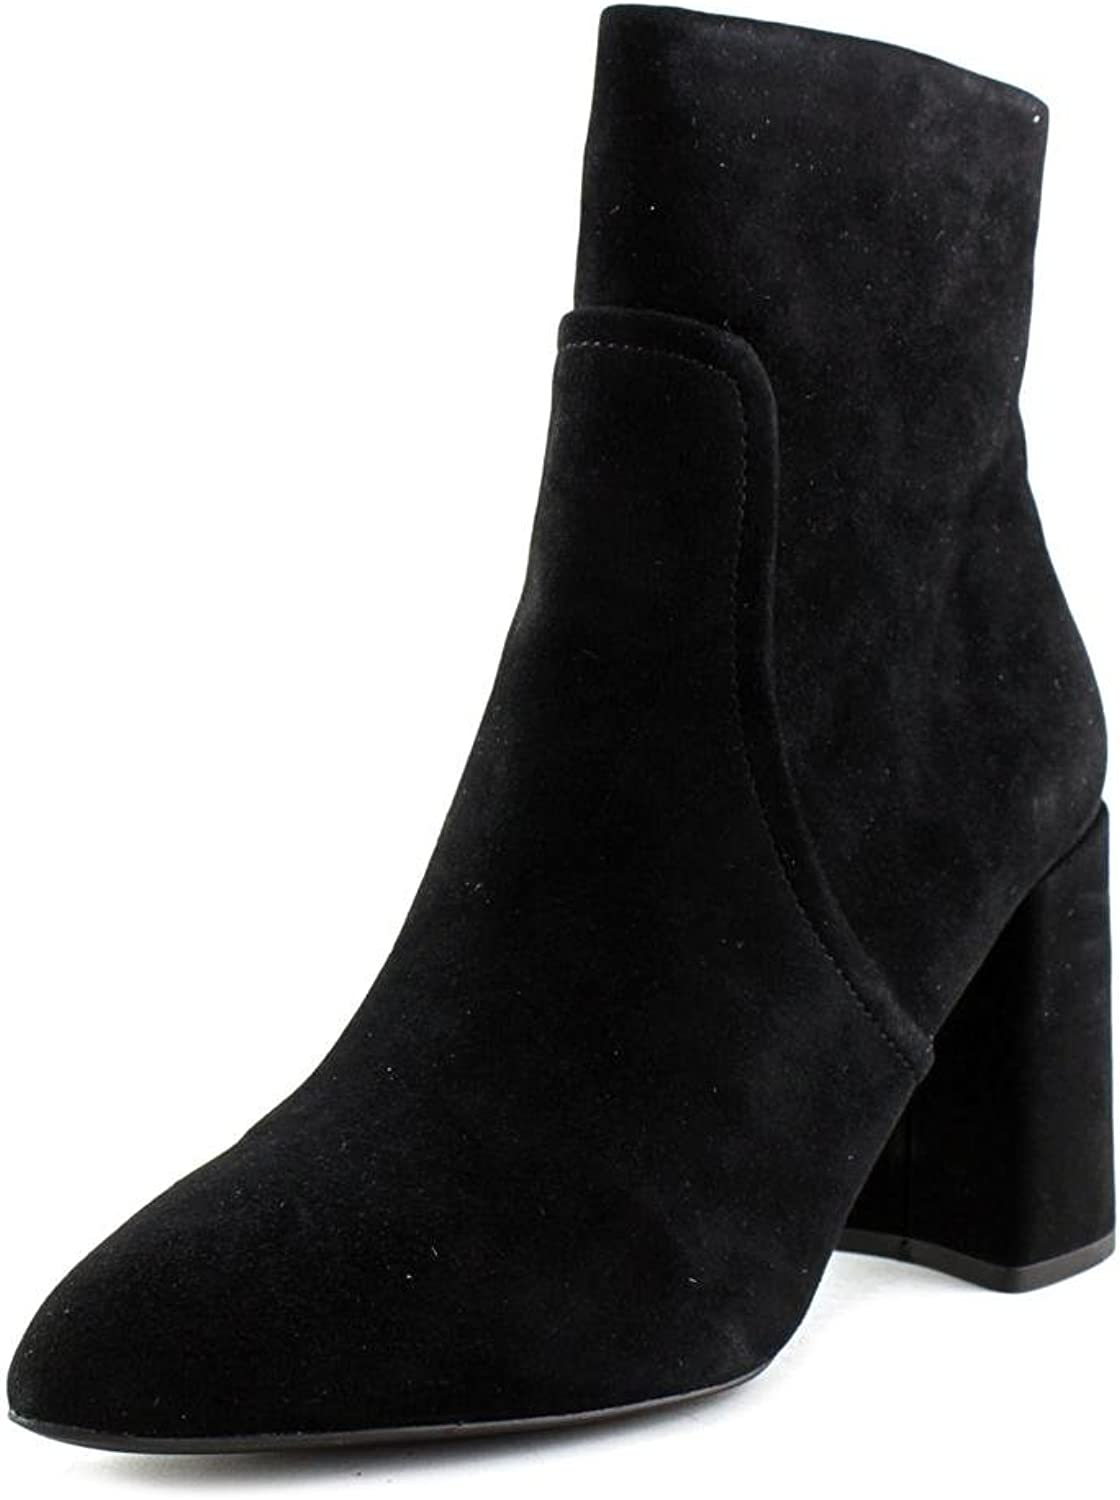 Steve Madden Womens Jaque Leather Closed Toe Ankle Fashion Boots Fashion Boots